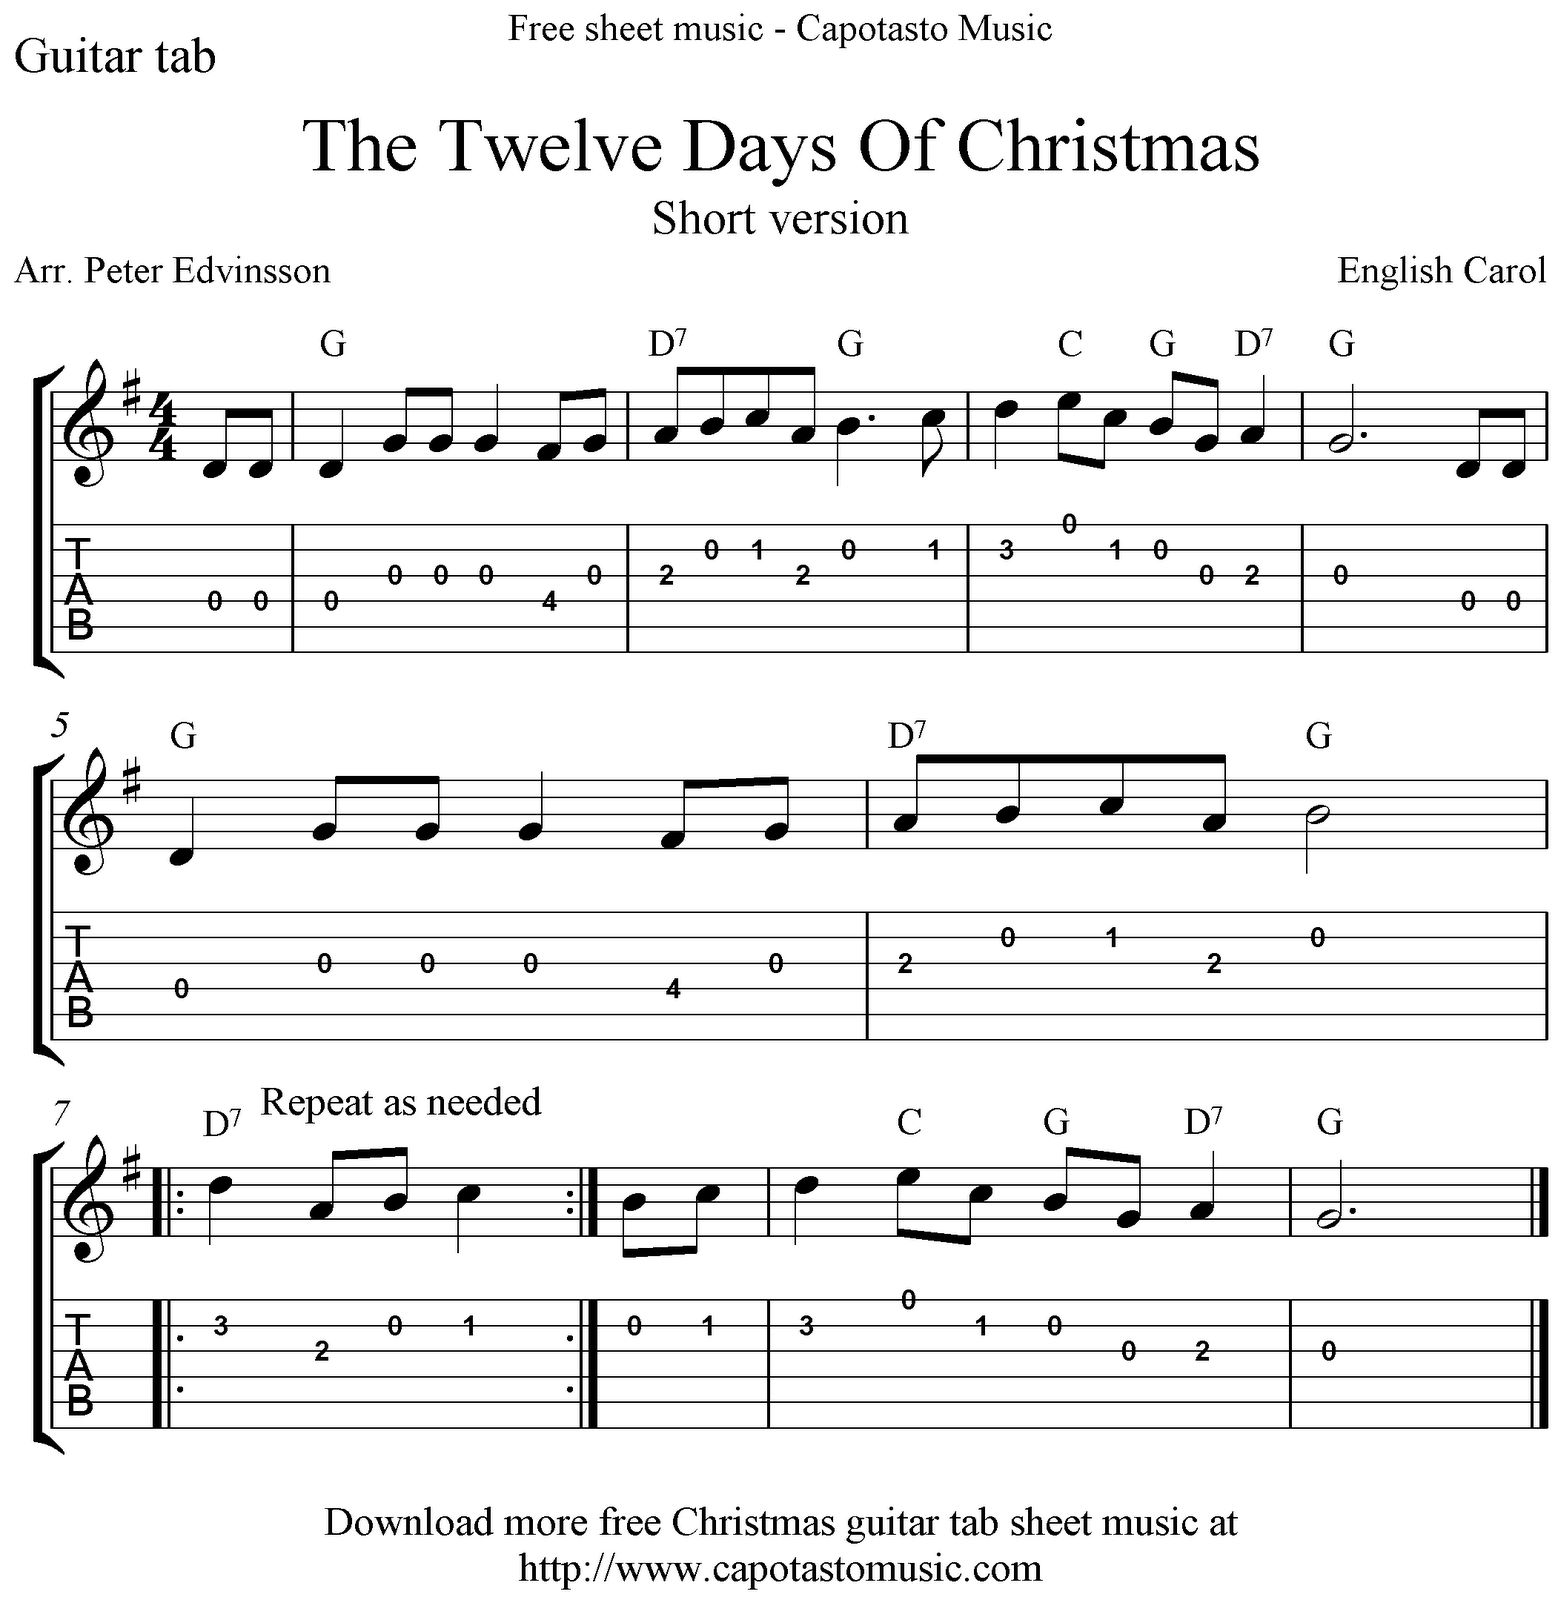 The Twelve Days Of Christmas, free guitar tablature sheet music